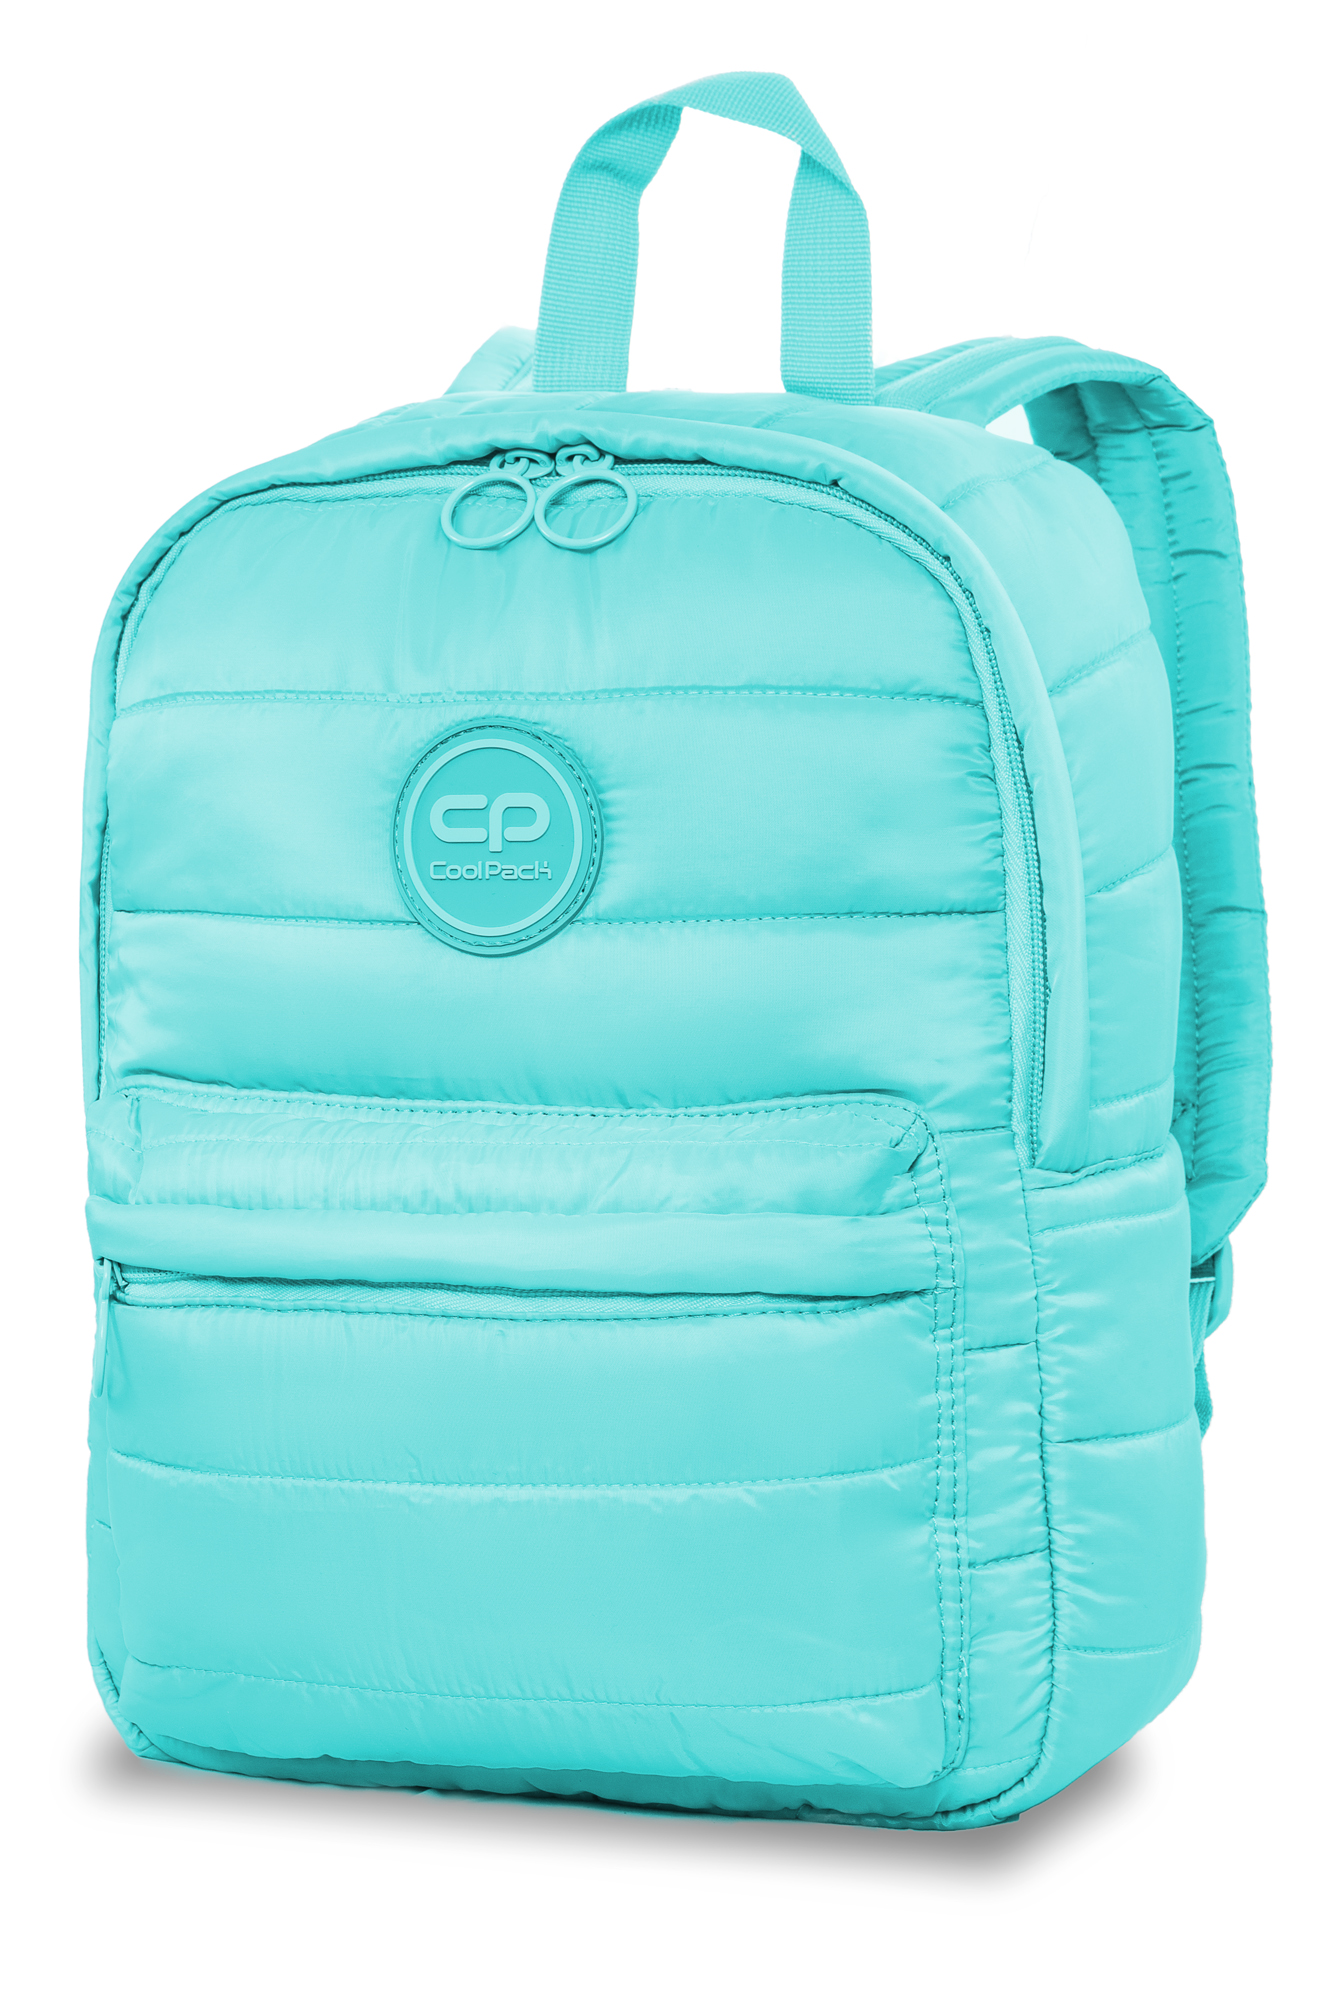 Coolpack - abby - youth backpack - sky blue